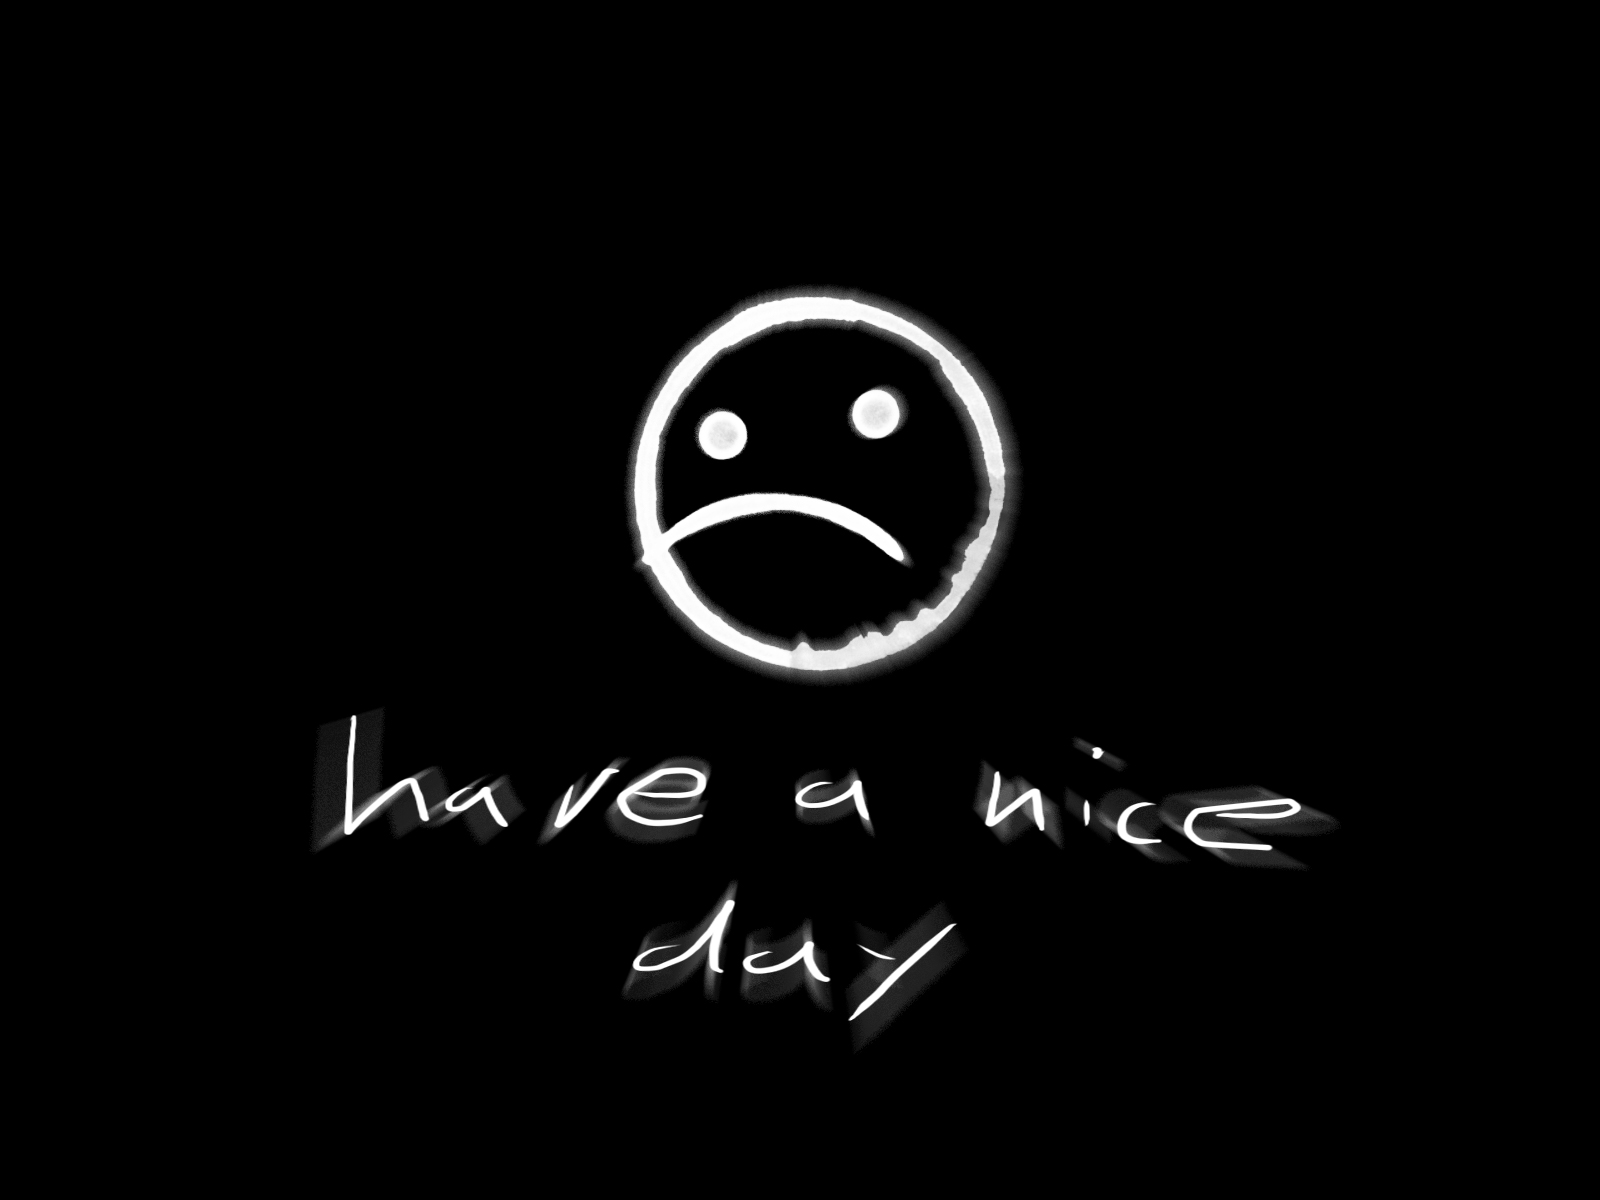 http://1.bp.blogspot.com/_5LTT-nshOCo/TJsh_EGP9xI/AAAAAAAADp8/4bqIAV8I2ww/s1600/Have_a_nice_day___Wallpaper_by_Thrife.jpg